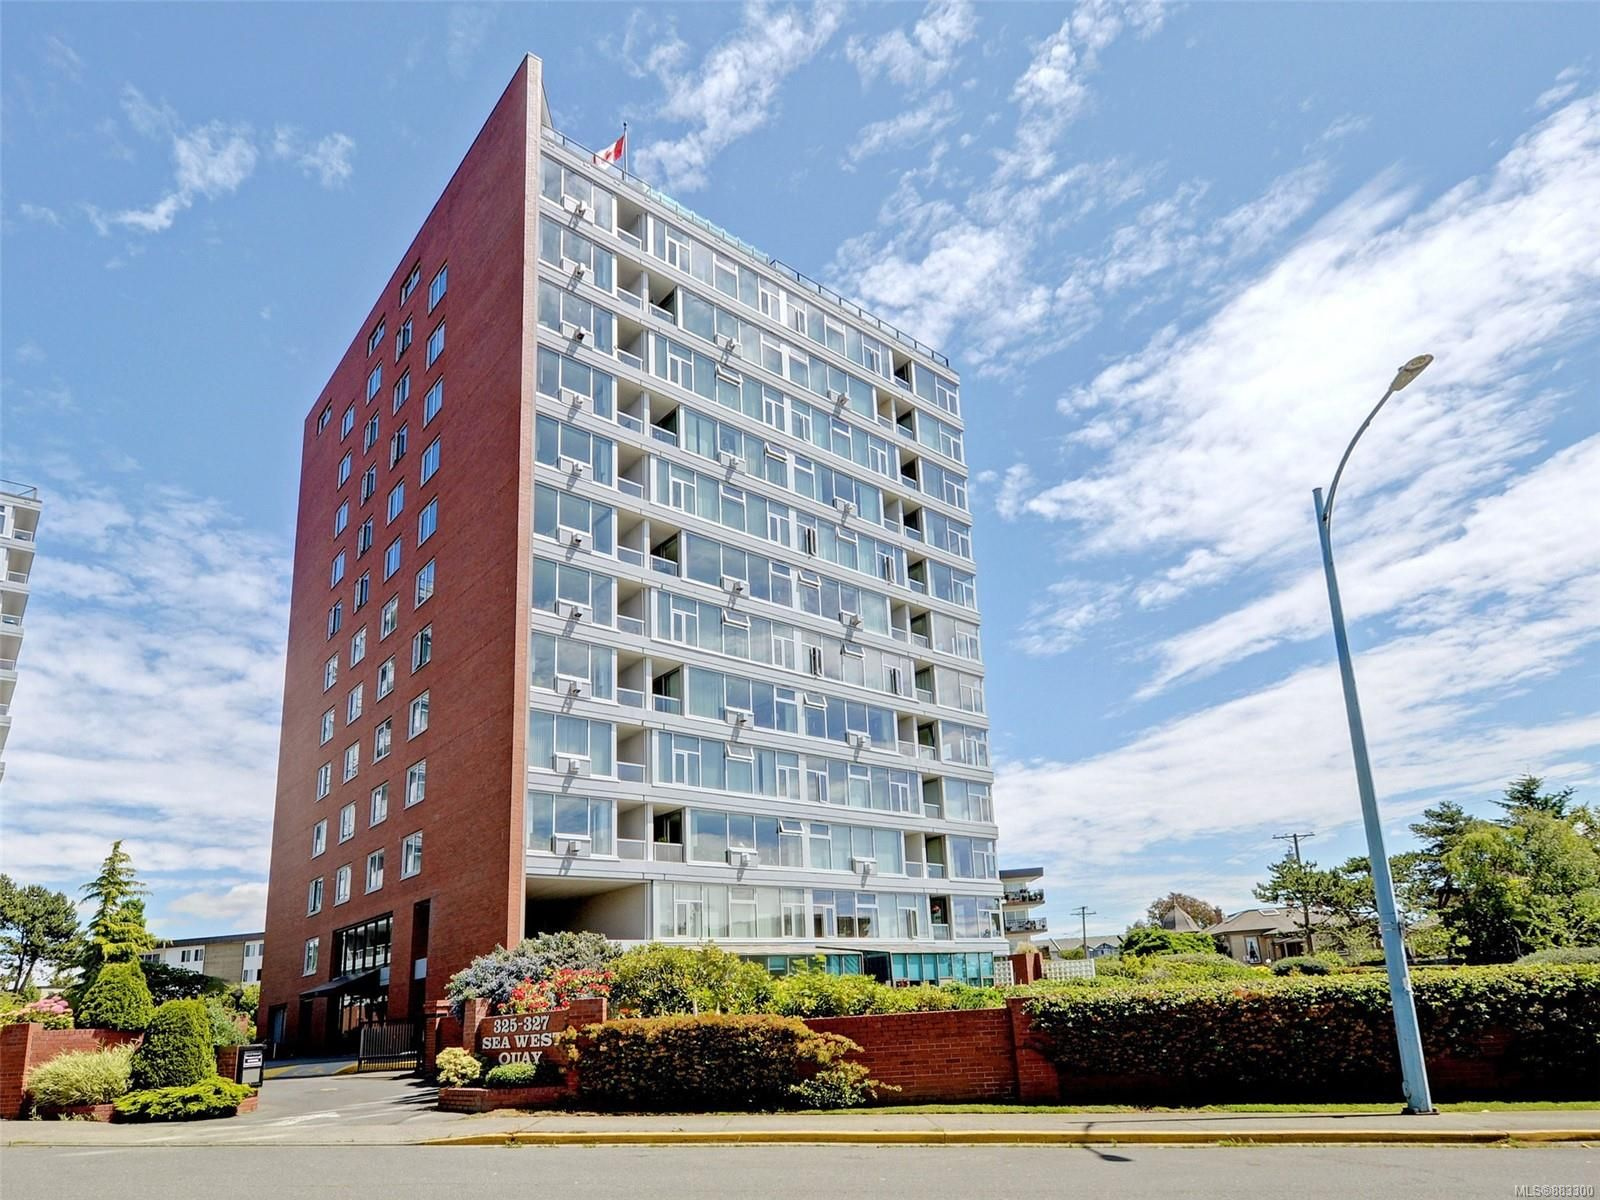 Main Photo: 201 325 Maitland St in : VW Victoria West Condo for sale (Victoria West)  : MLS®# 883300